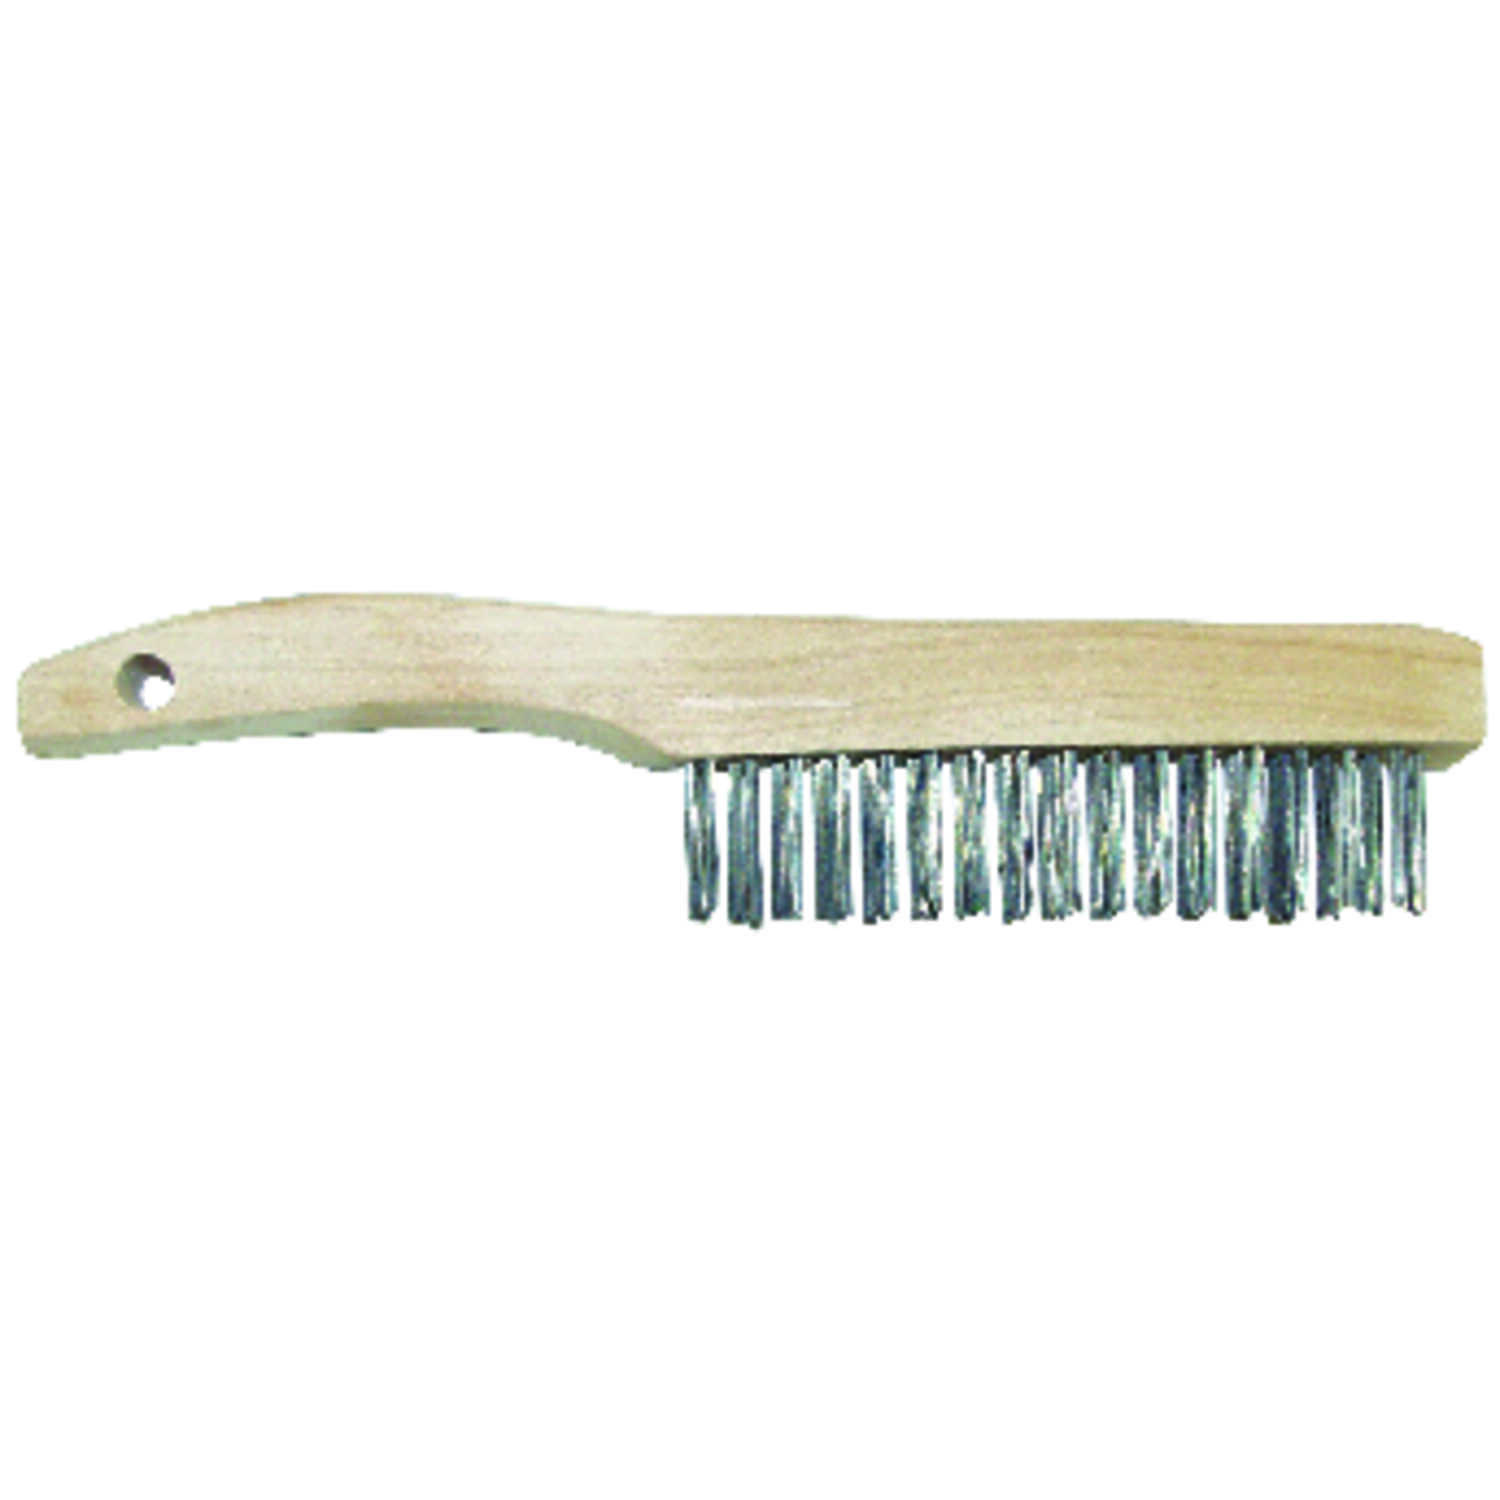 Allway  1-1/16 in. W x 10.25 in. L Carbon Steel  Wire Brush